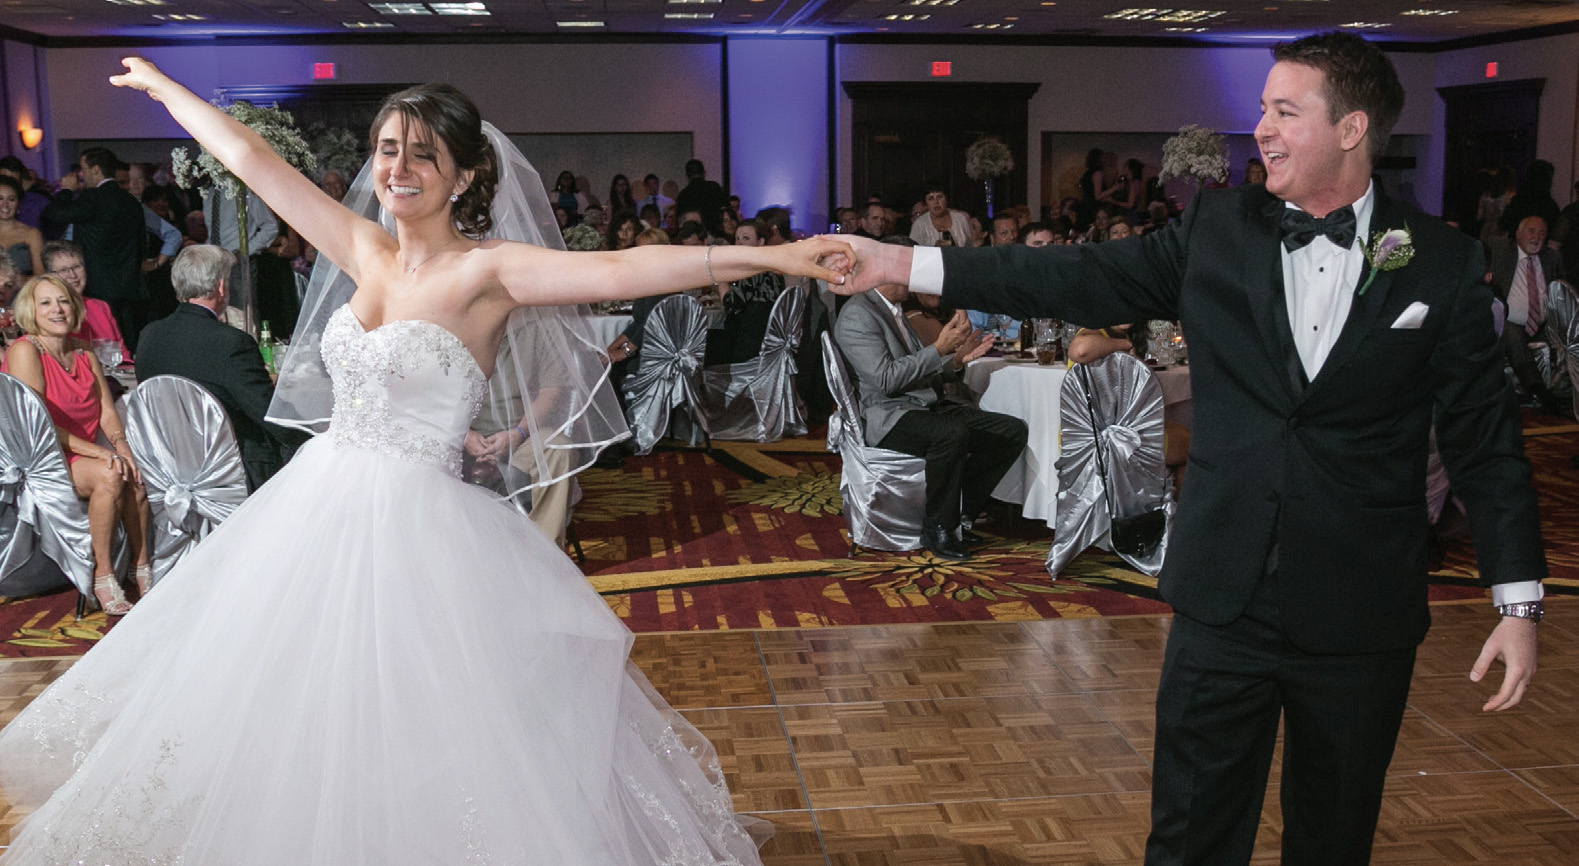 MATT HIZNAY dances with his wife, Ally, during their wedding reception on June 14, 2014. - COURTESY MATT HIZNAY / CIRINO PHOTOGRAPHY